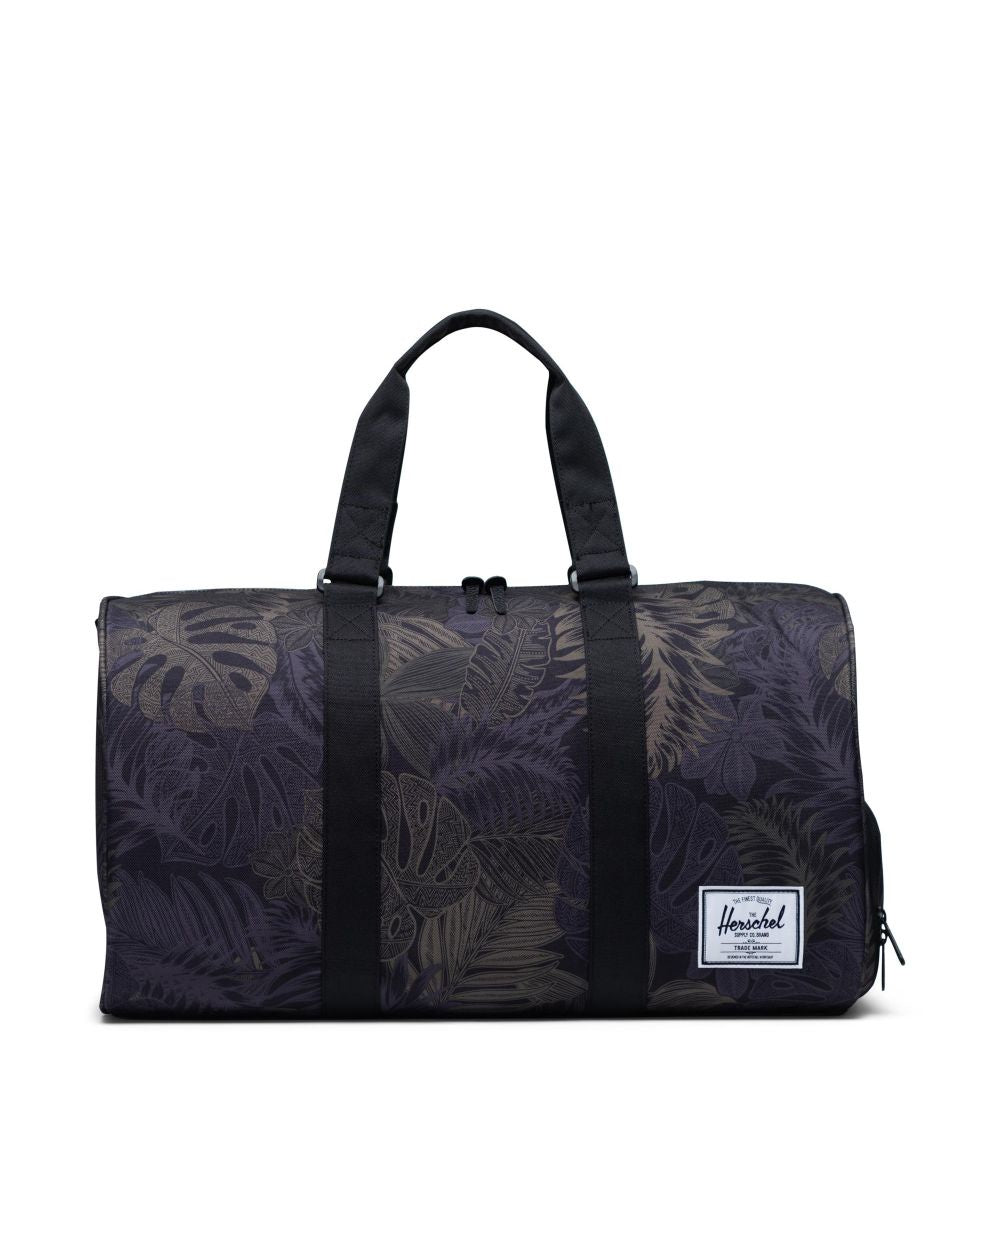 HERSCHEL - NOVEL DUFFLE IN DARK JUNGLE